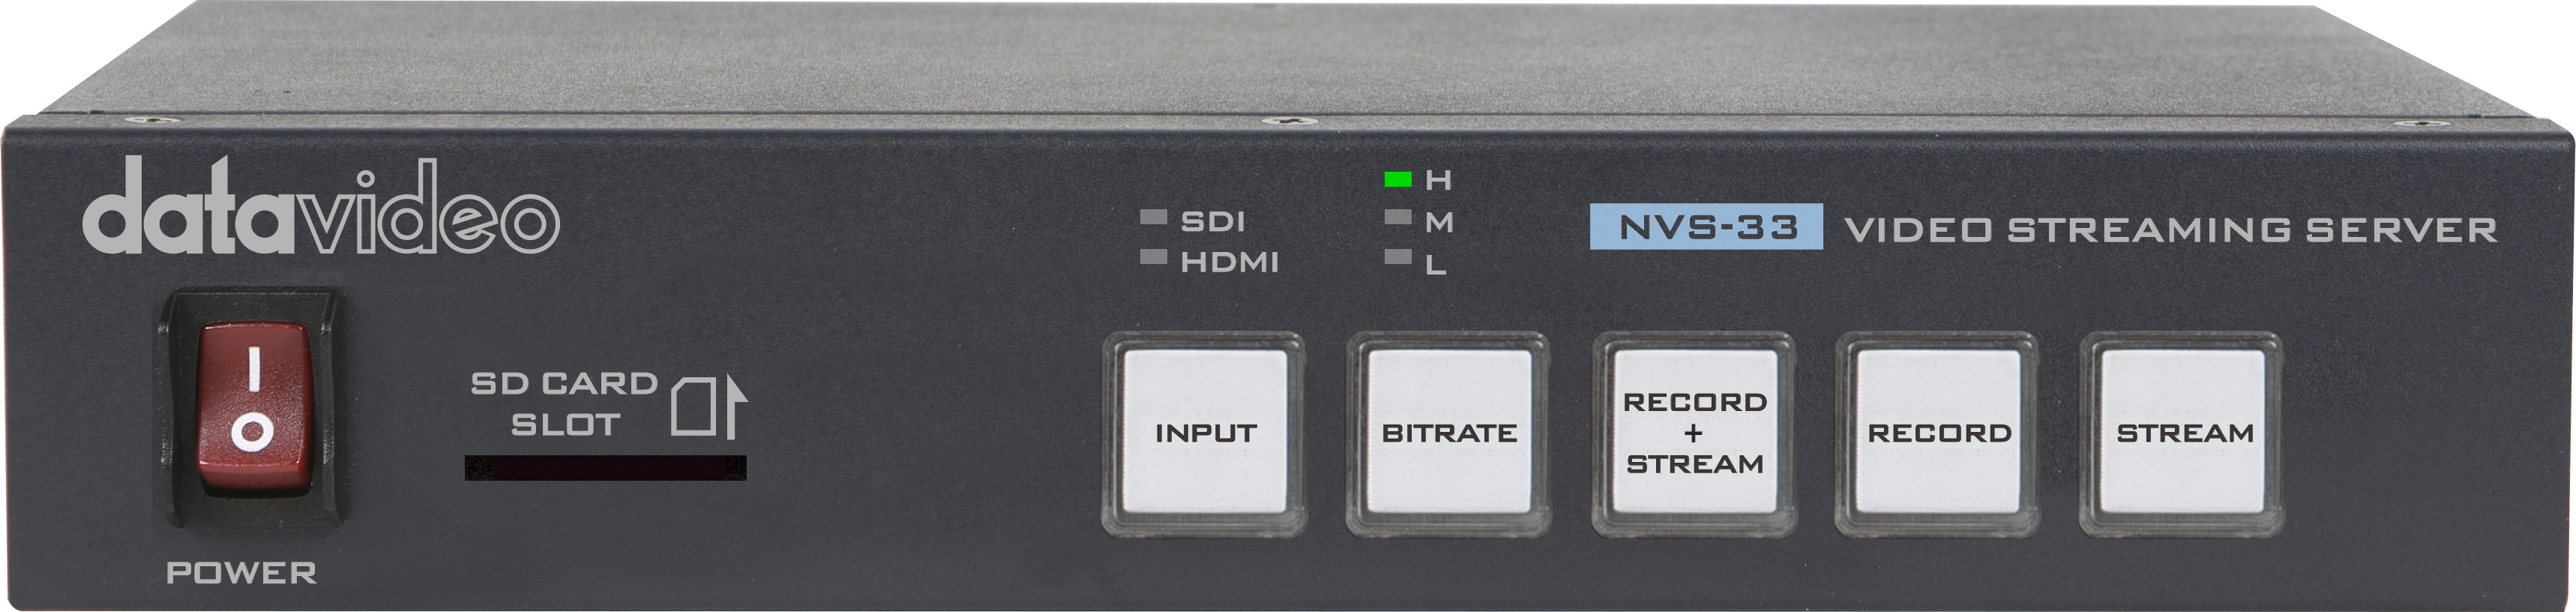 Datavideo announced NVS-33 H.264 streaming encoder/recorder 6